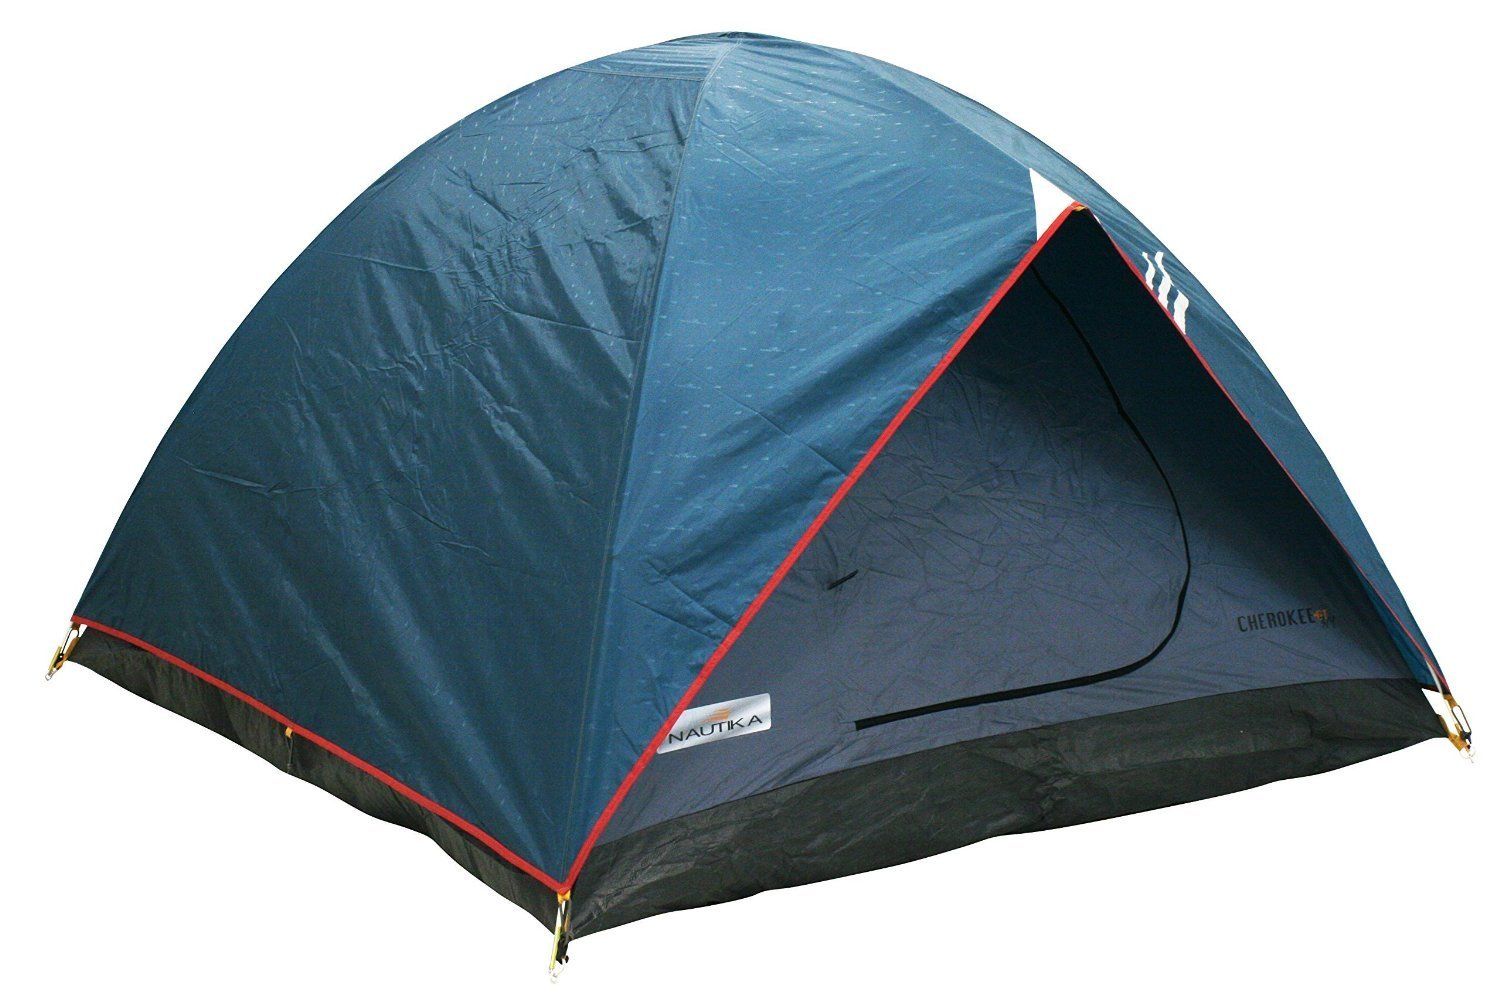 NTK Cherokee GT Sport Camping Dome Tent